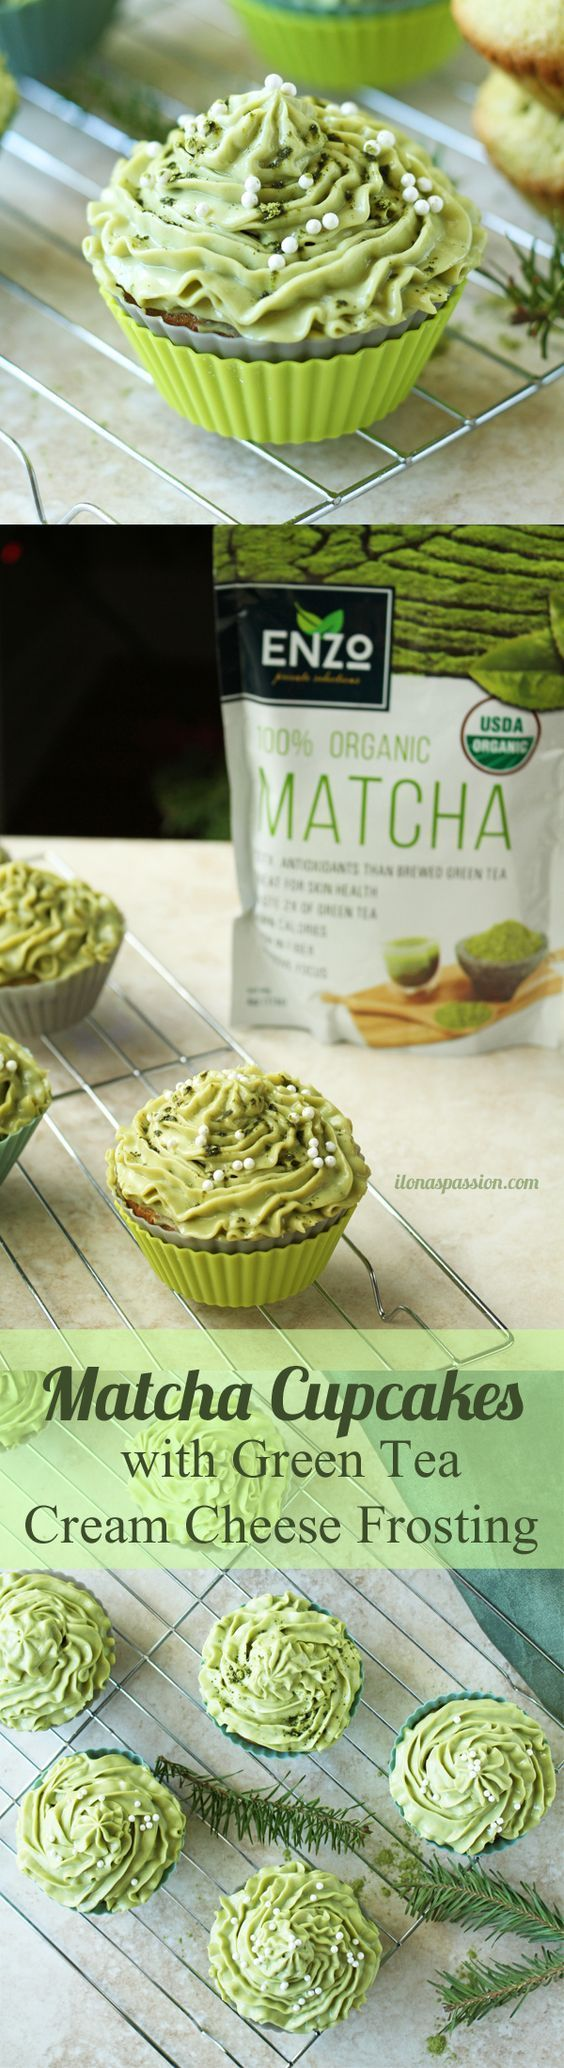 Delicious Matcha Cupcakes with Green Tea Cream Cheese Frosting    Find more stuff: www.victoriasbestmatchatea.com